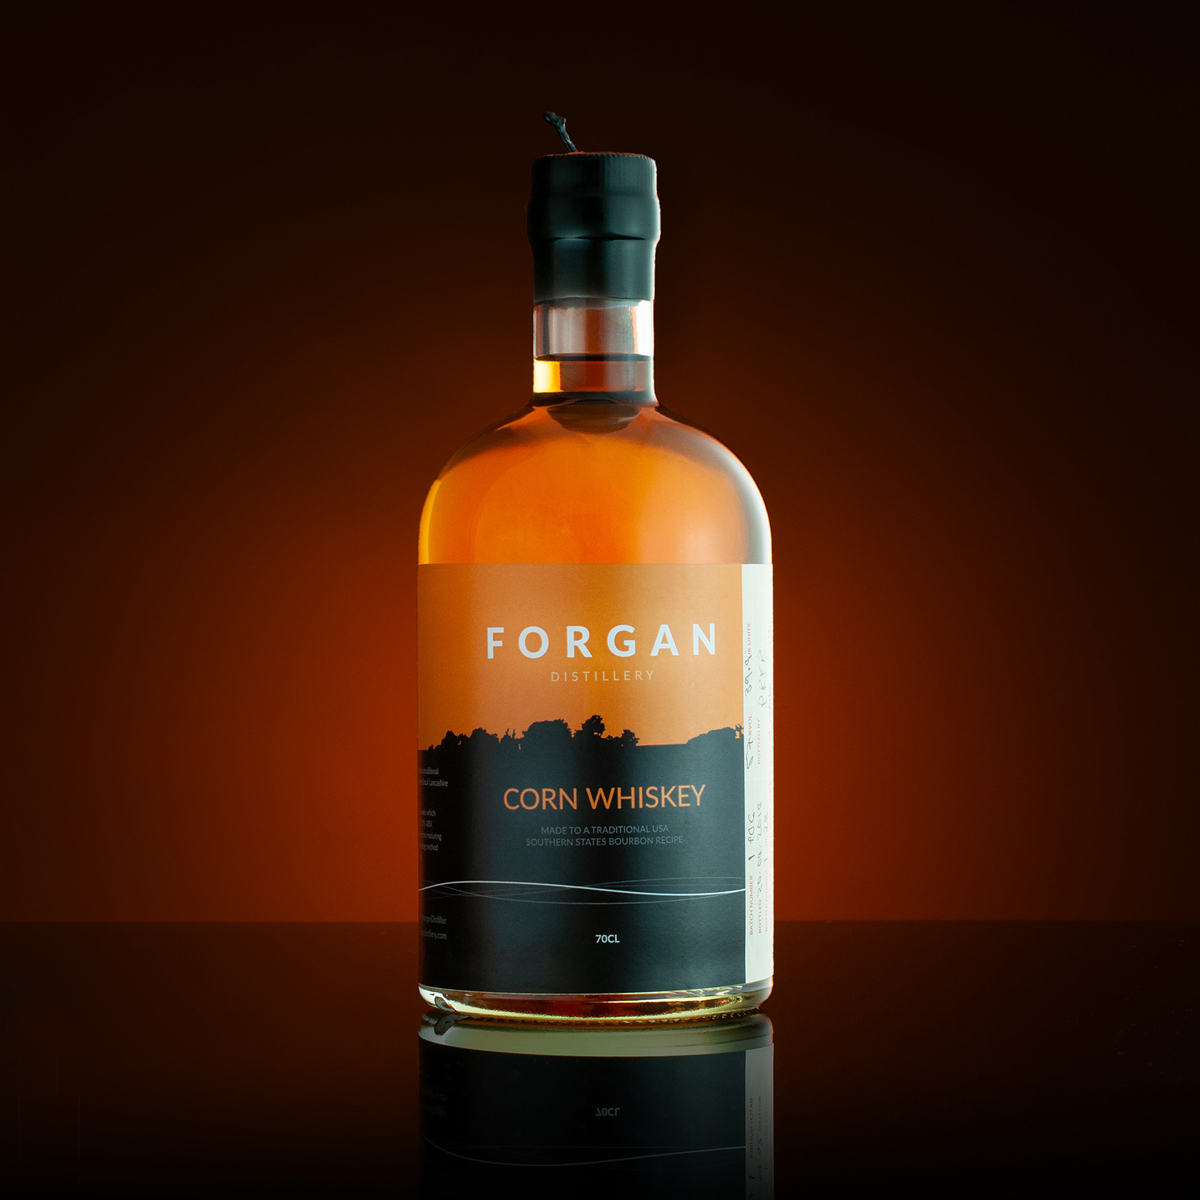 Forgan Corn Whiskey – Batch #1